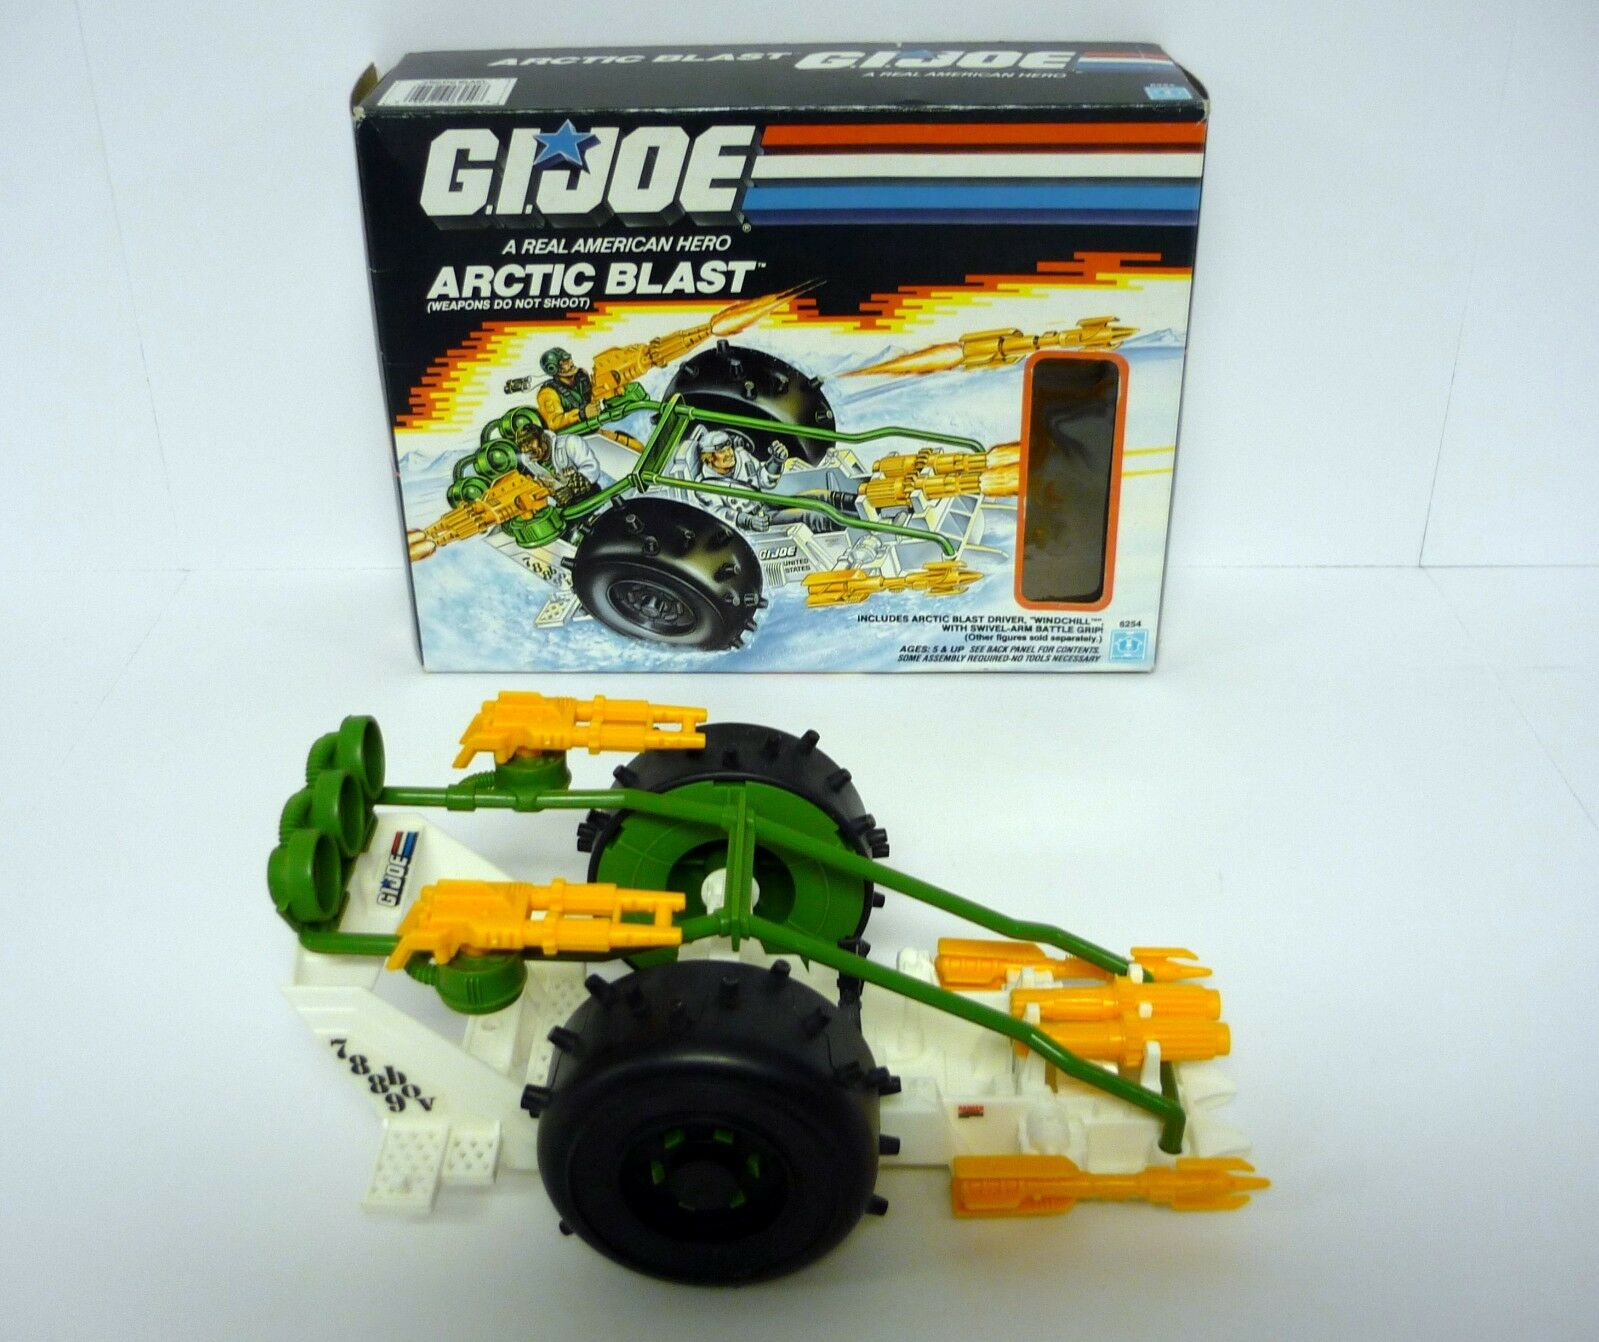 G.I. JOE ARCTIC BLAST BLAST BLAST Vintage Action Figure Vehicle COMPLETE w BOX 1989 0a2178